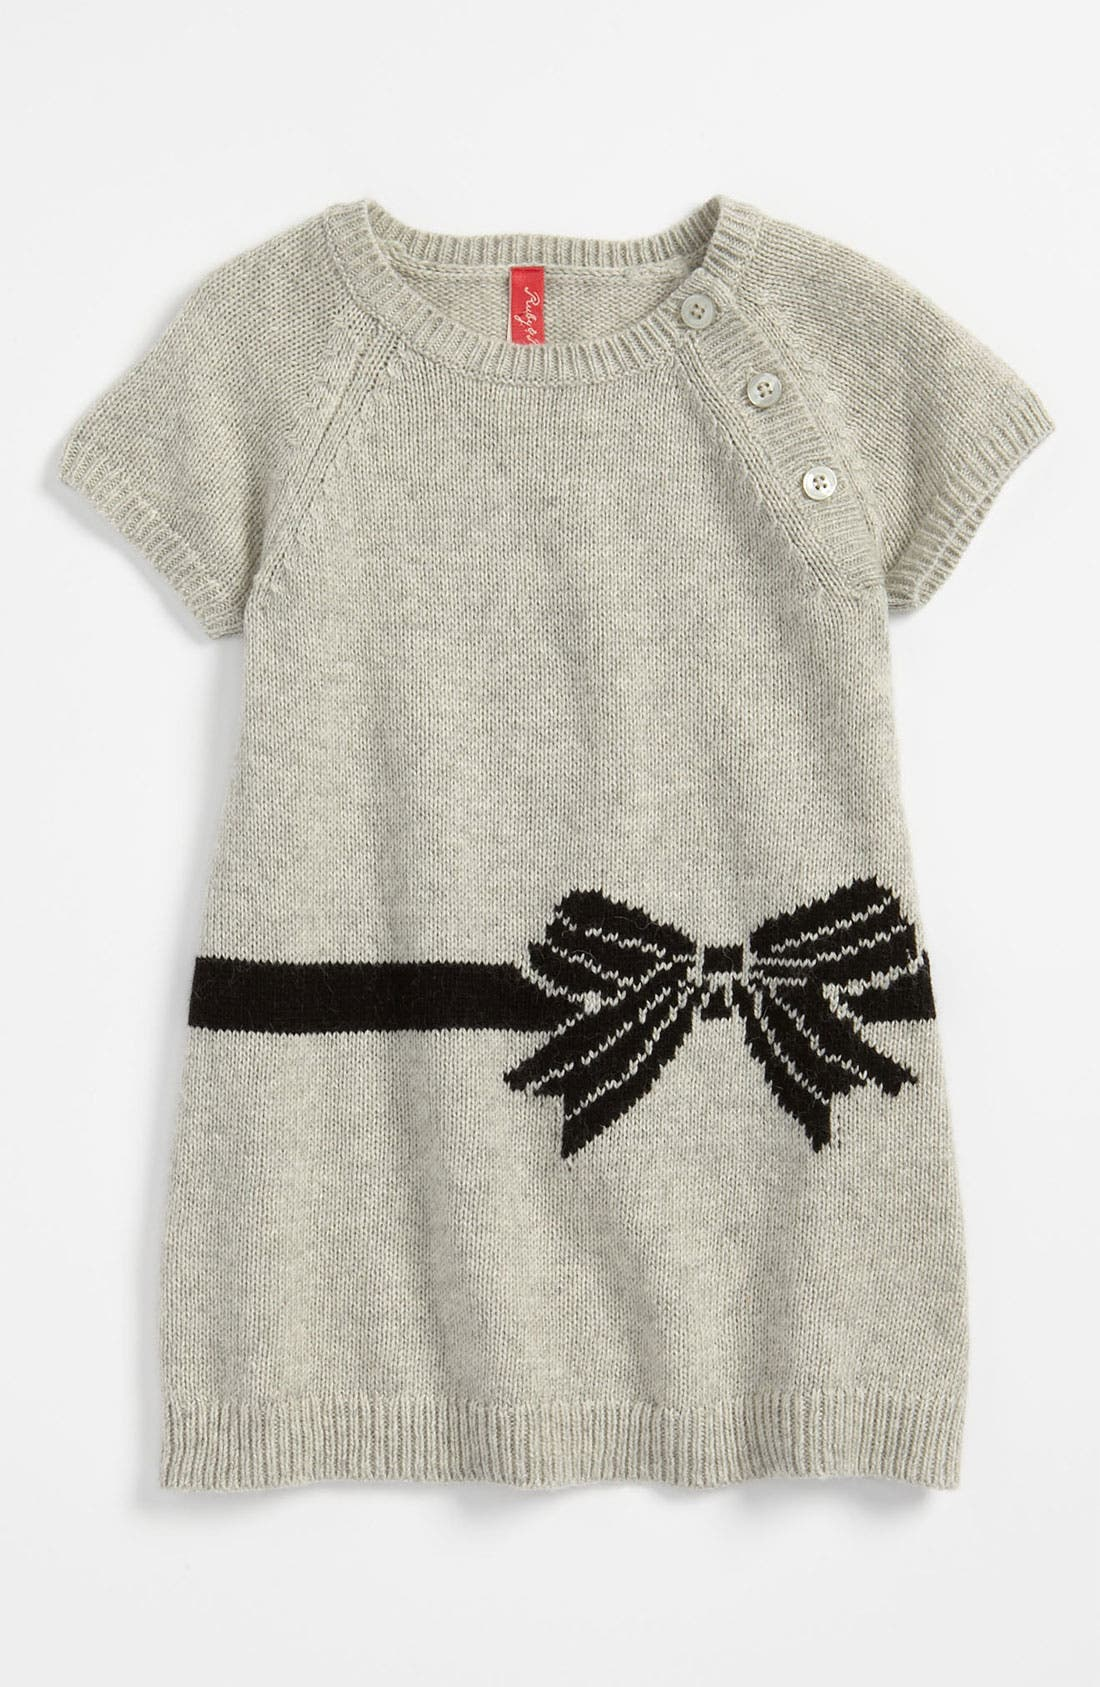 Main Image - Ruby & Bloom 'Paige' Sweater Dress (Infant)